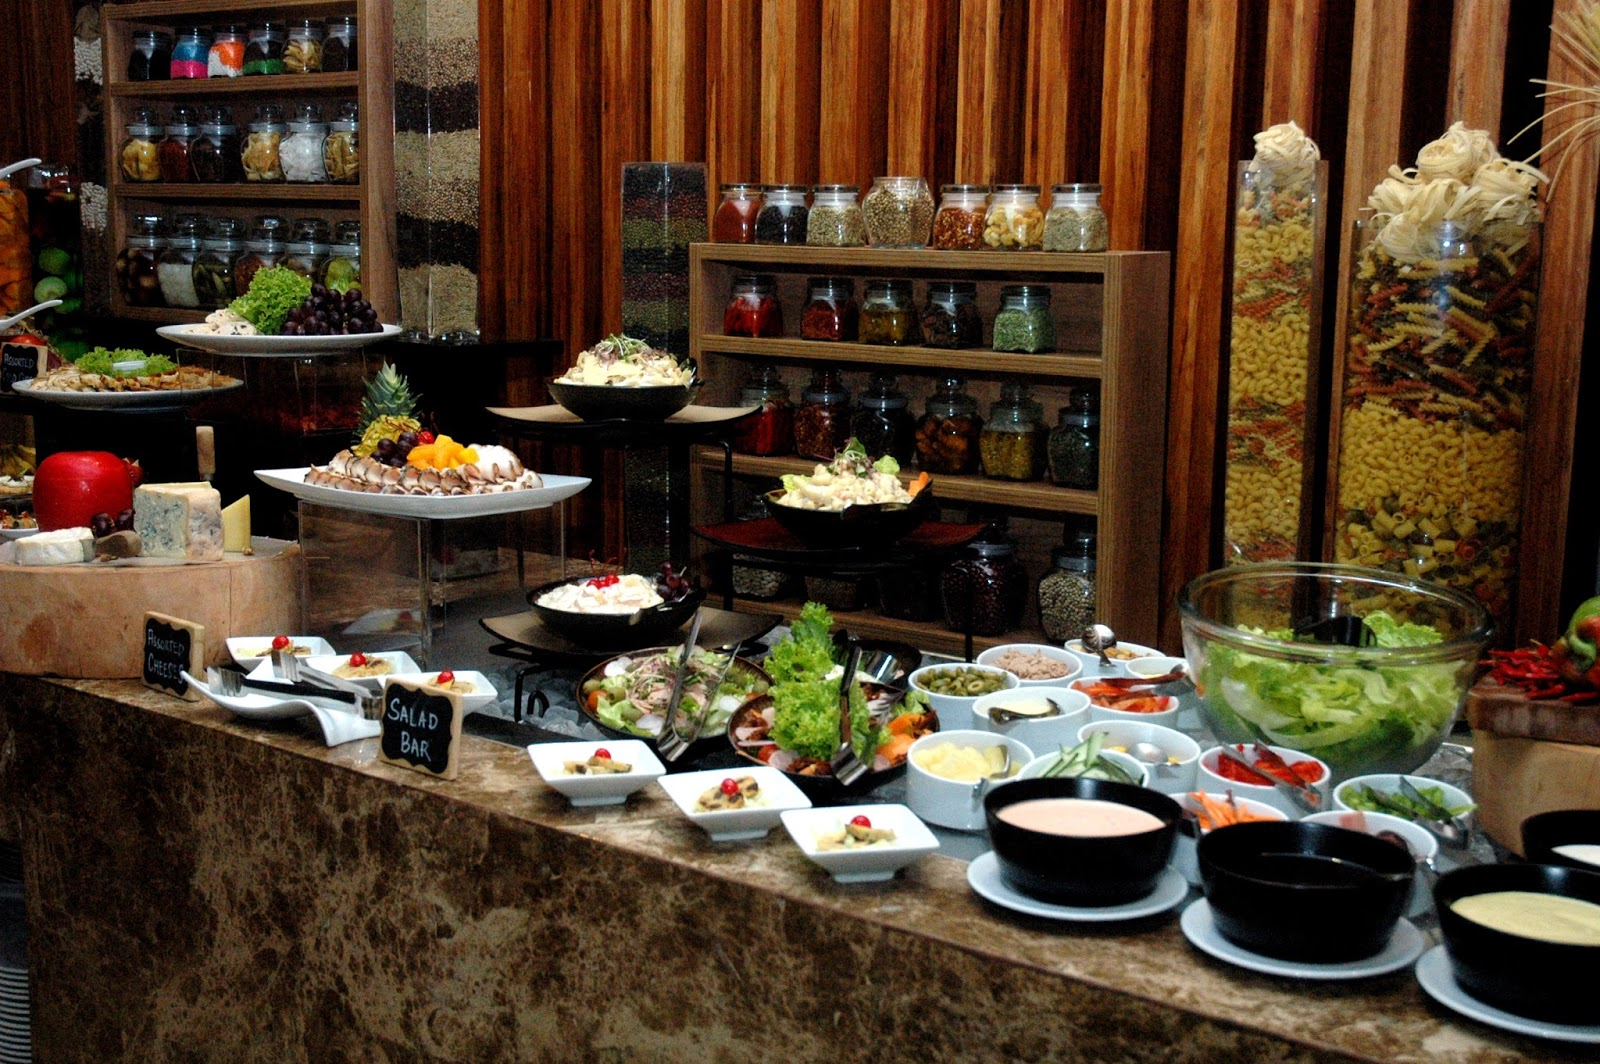 Cafe Spice Buffet Hours